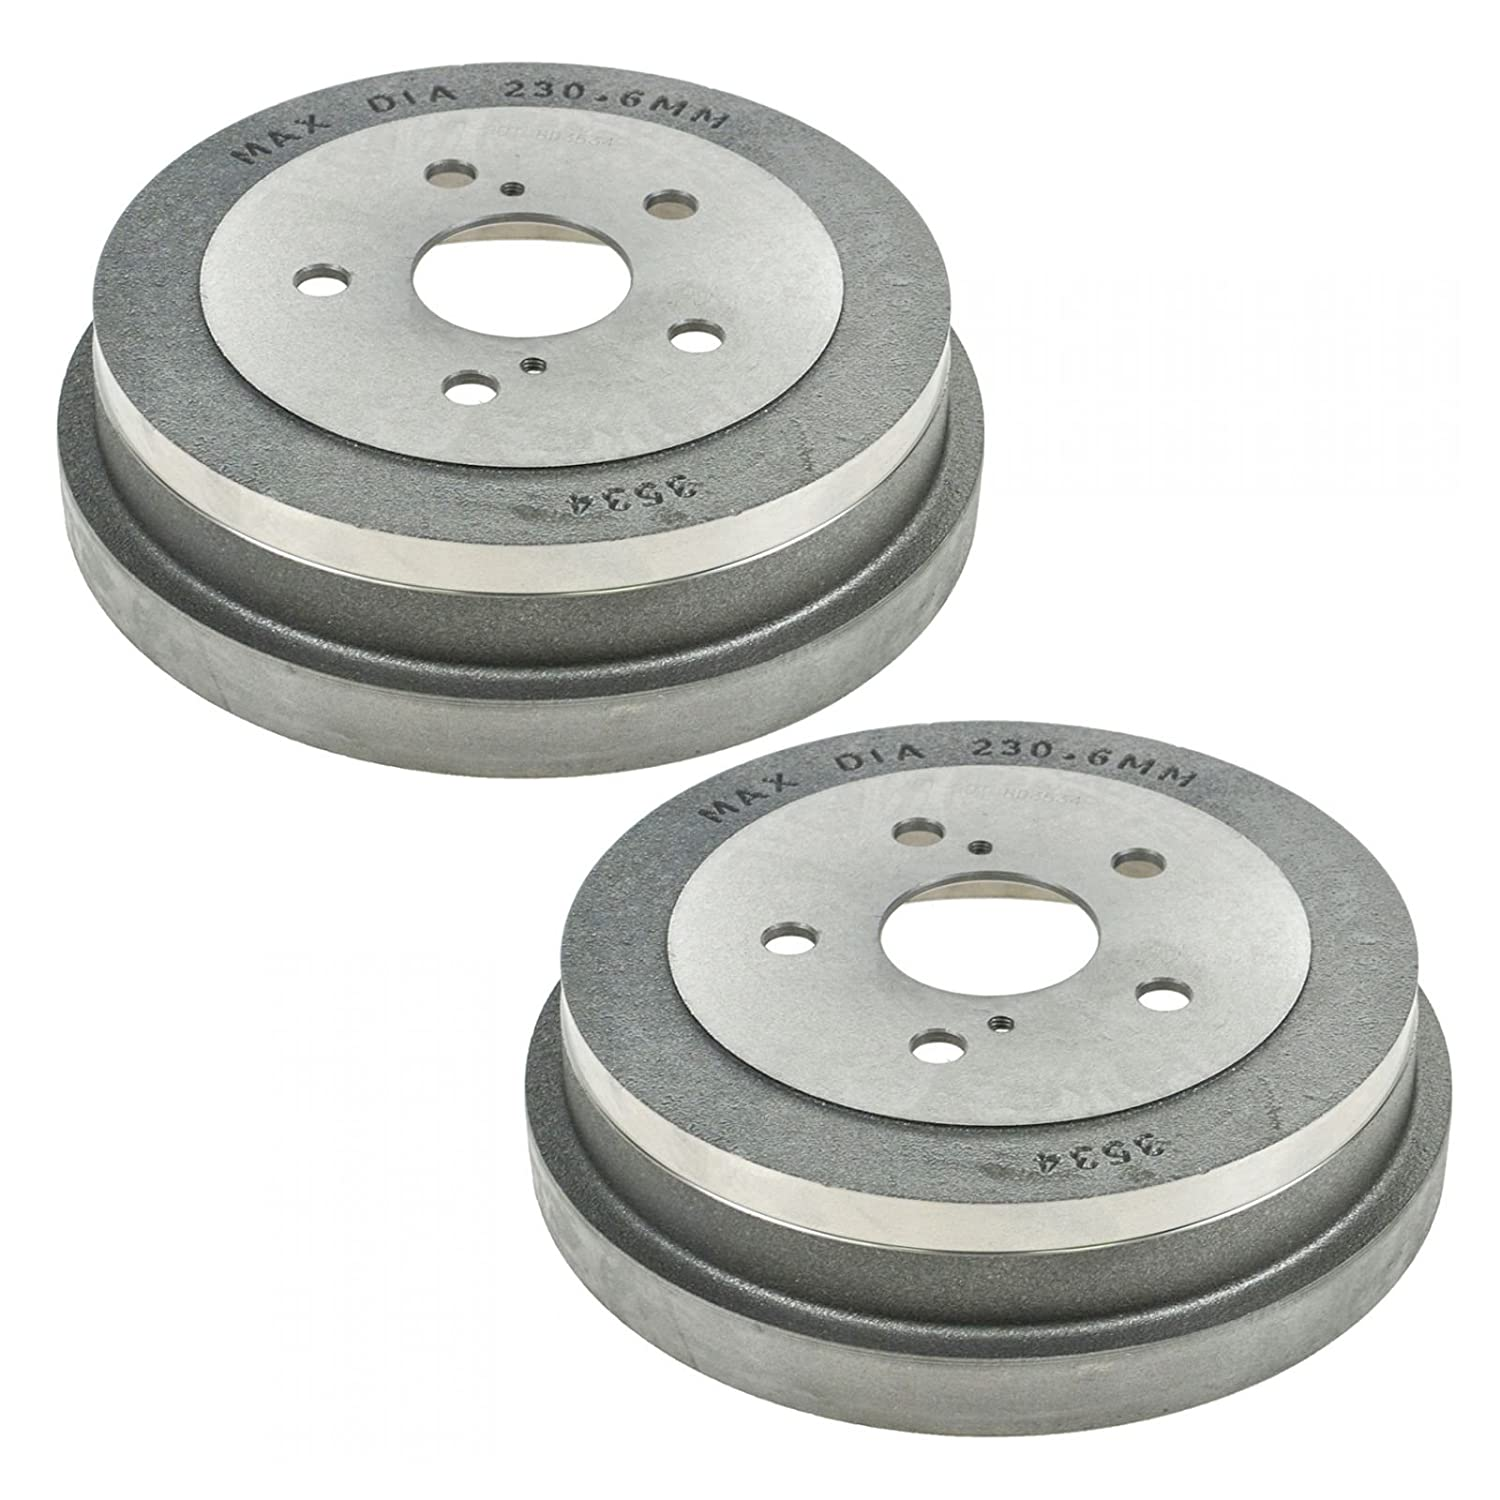 Rear Brakes Brake Drums Pair Set of 2 for Toyota Camry Solara AM Autoparts